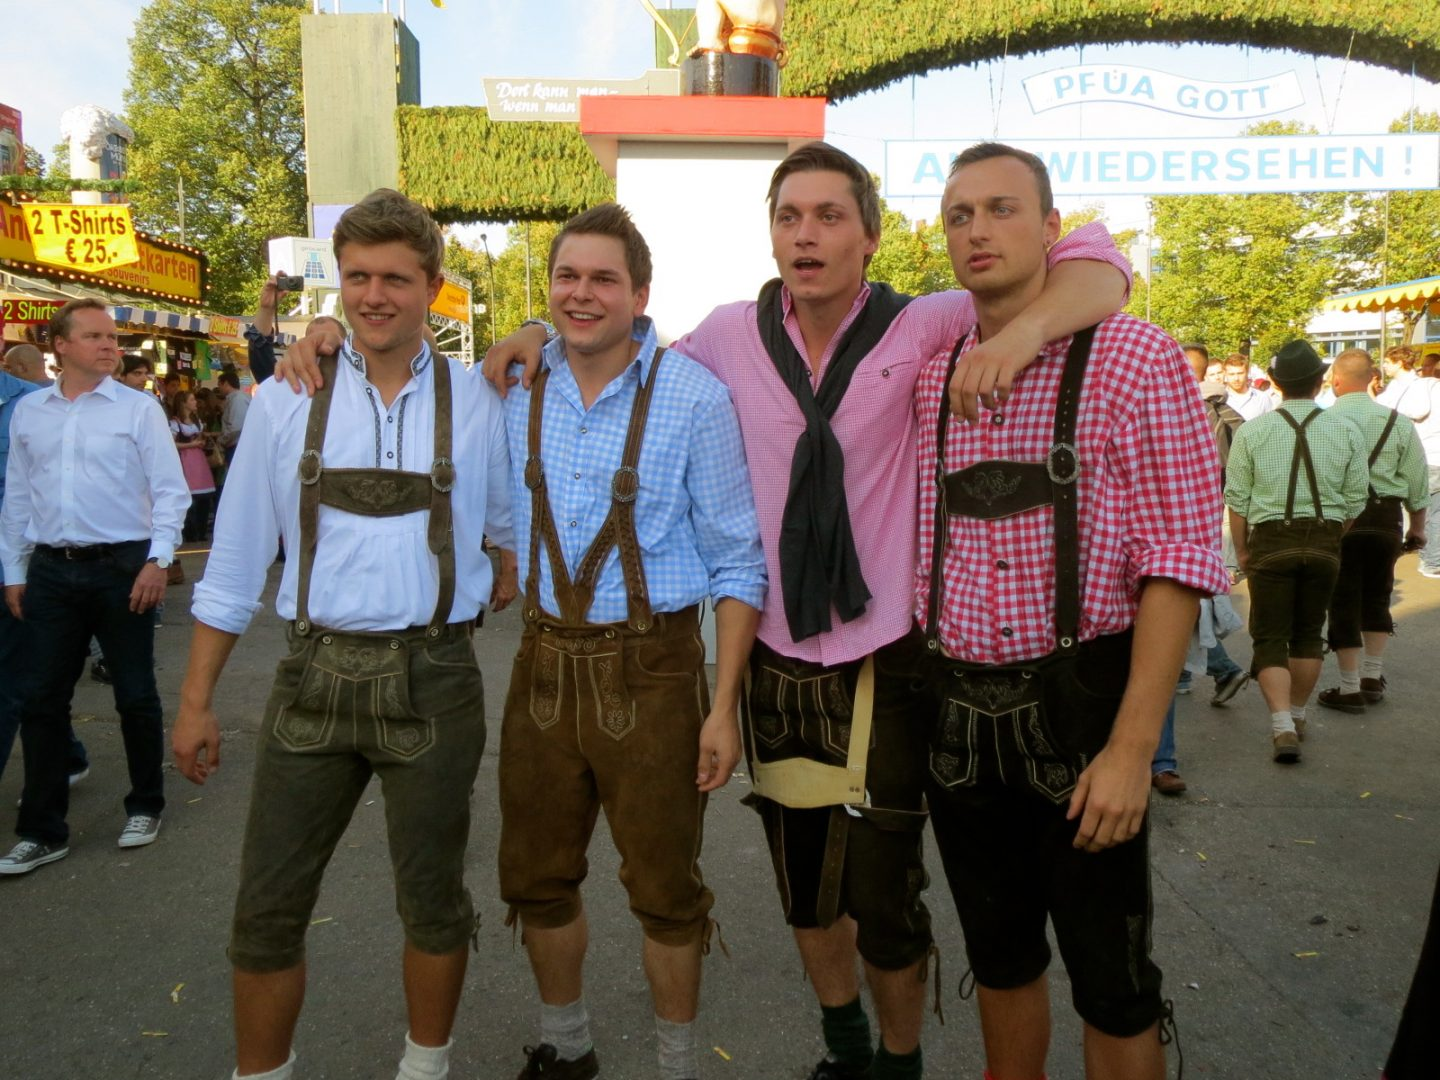 Lederhosen German Boys